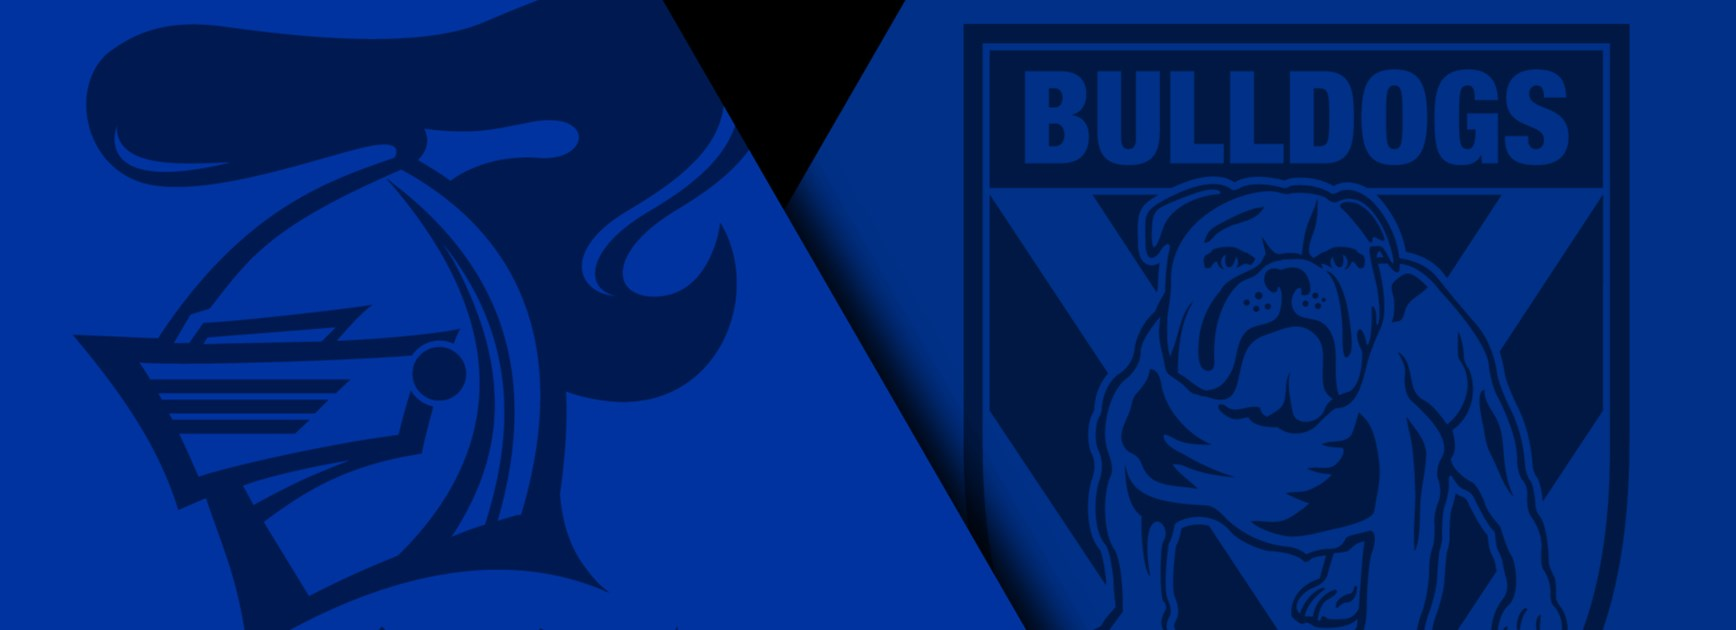 Will the Knights beat the Bulldogs in Round 22?